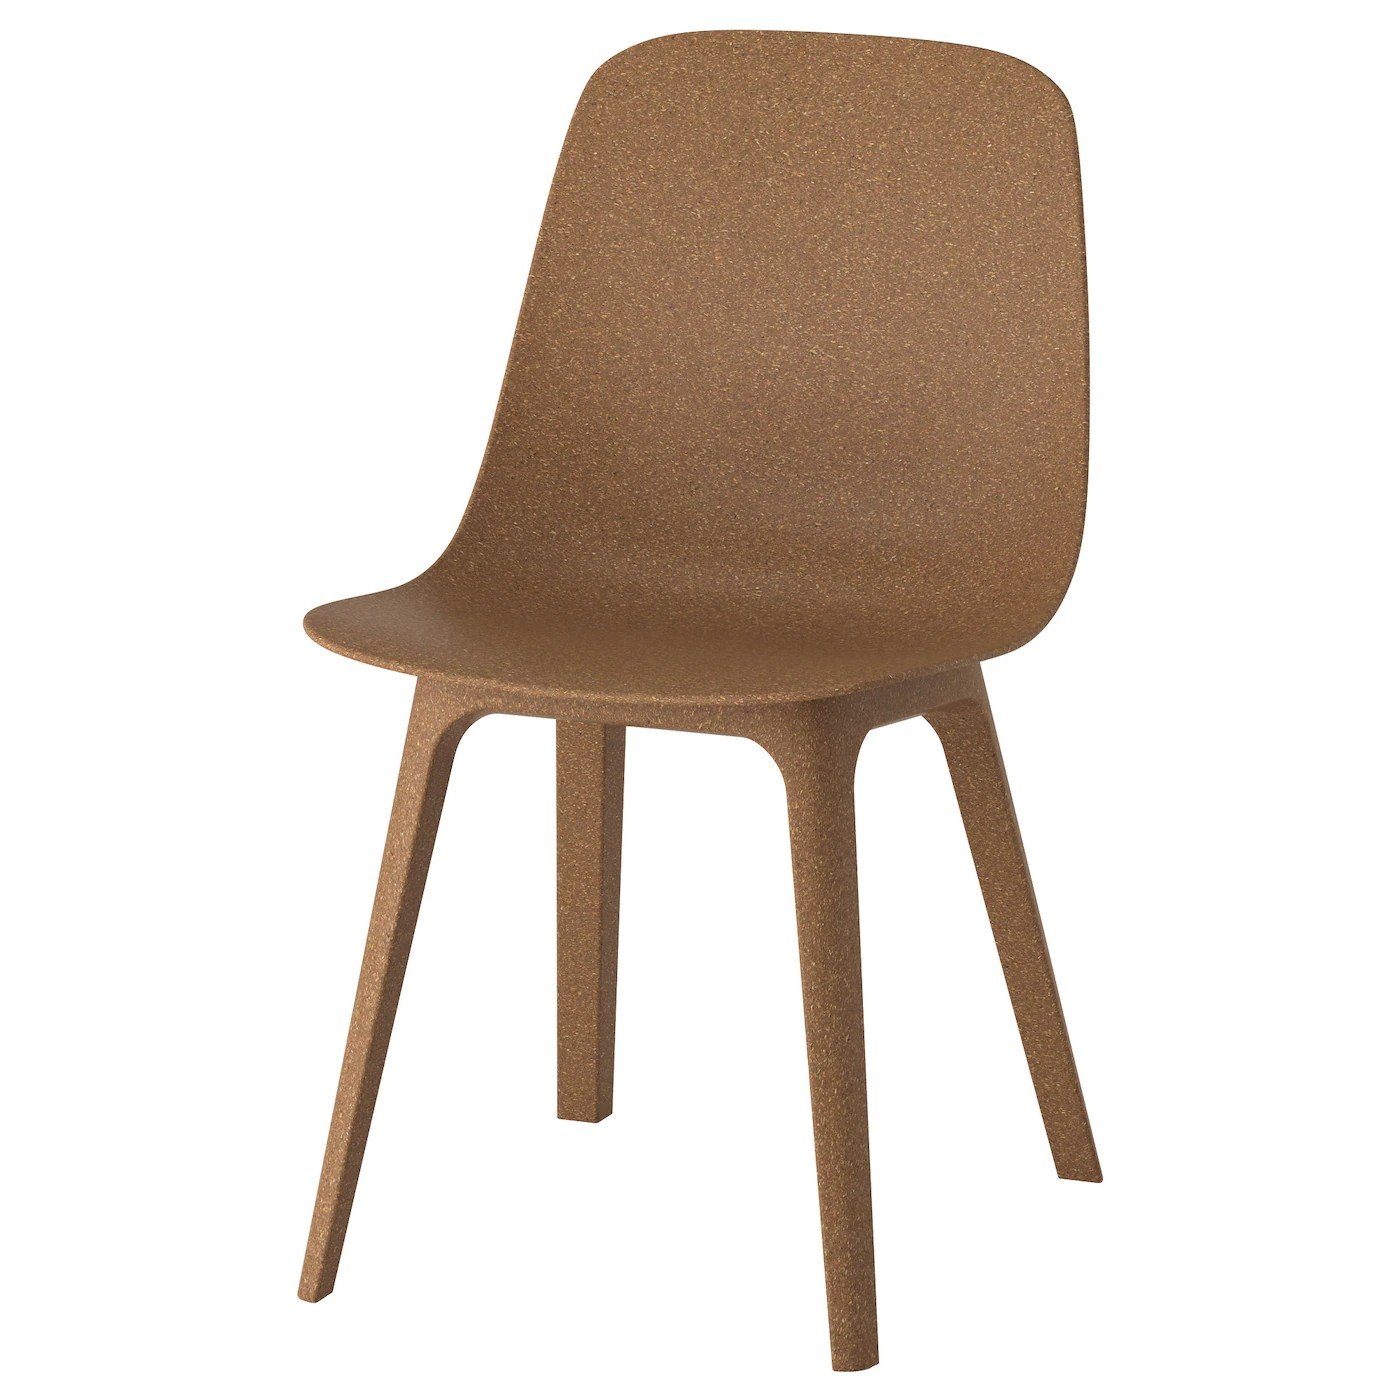 ikea stool chairs under the weather chair odger brown